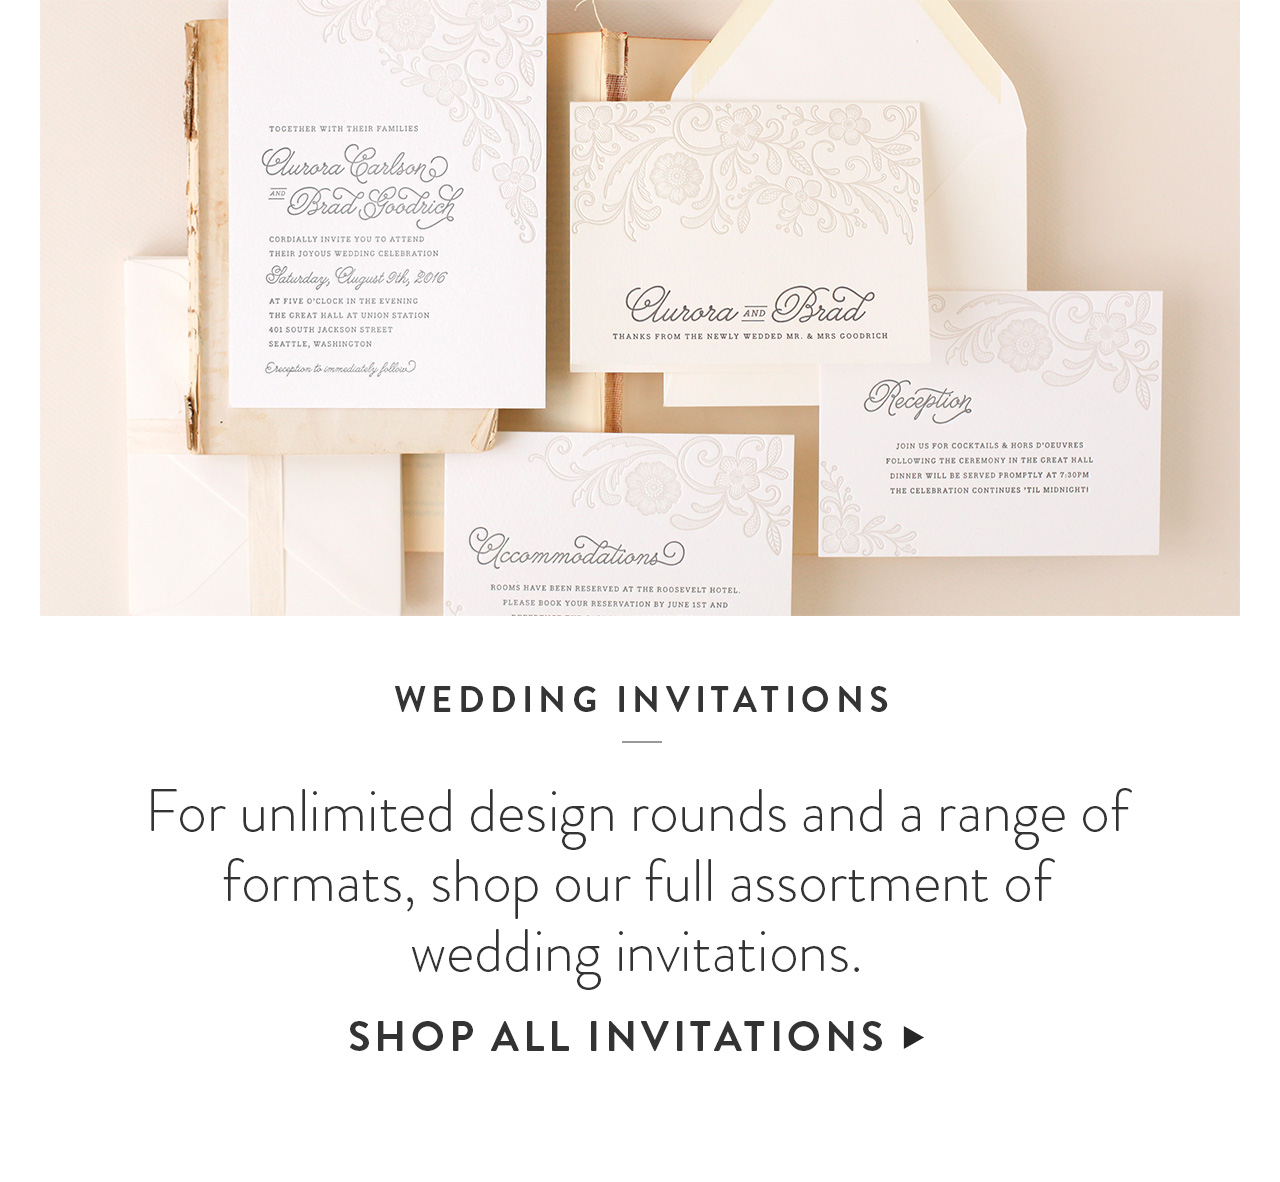 Shop All Invitations